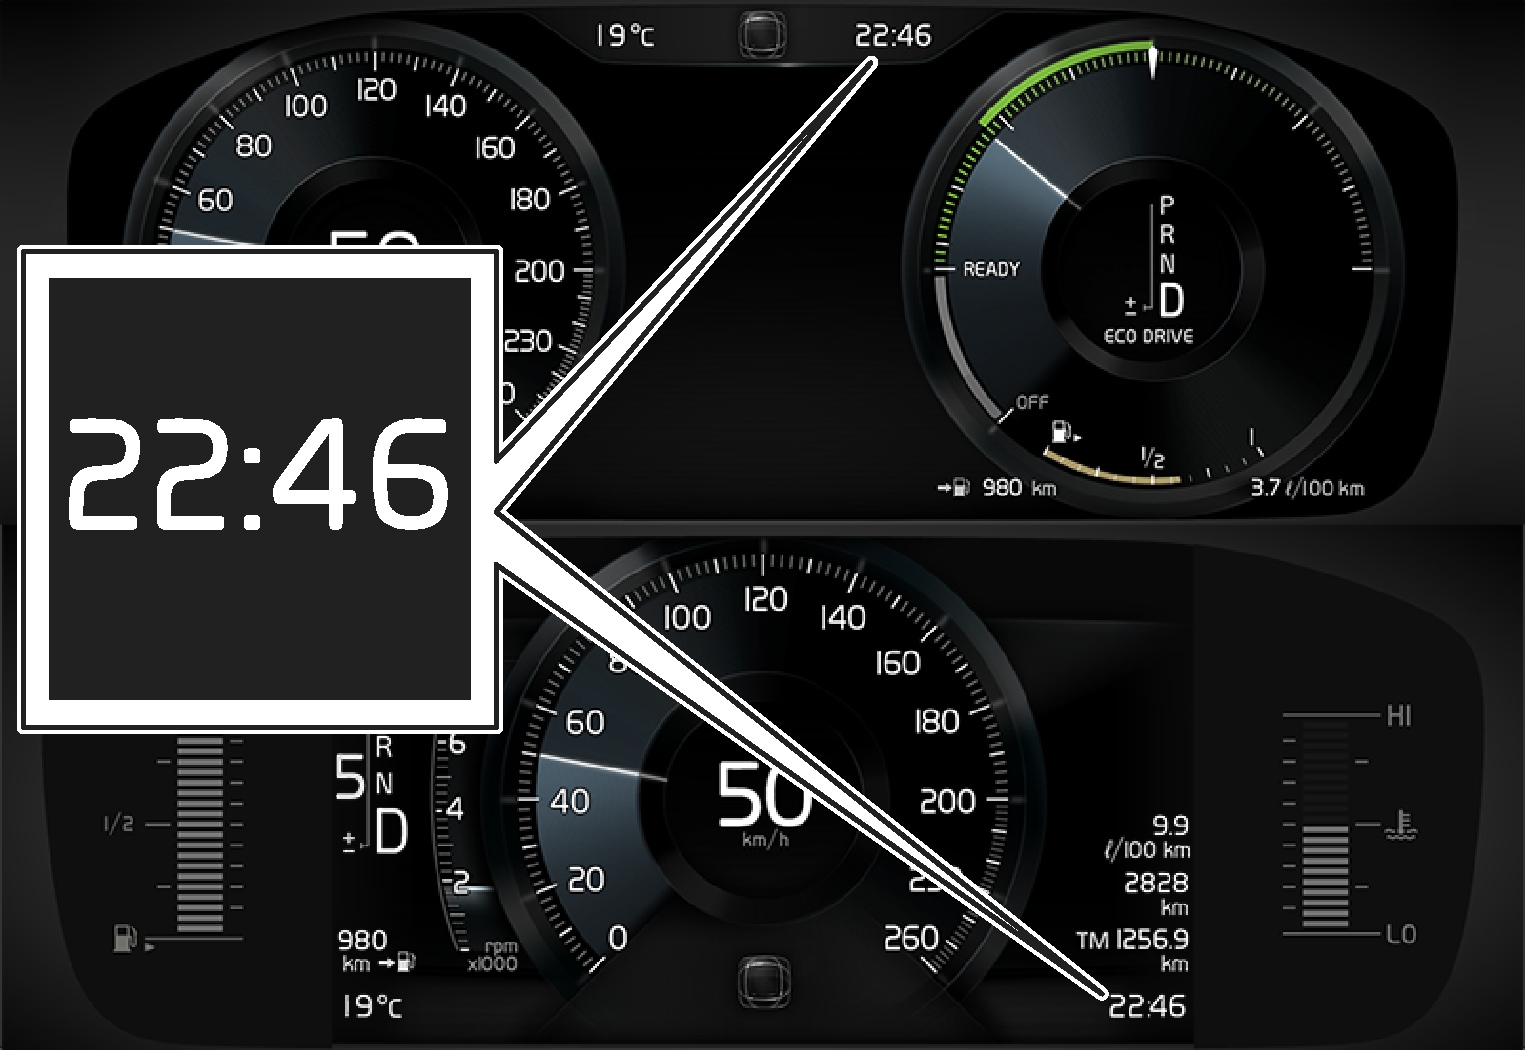 P5-15w46-Clock in driver display 8 inch and 12 inch